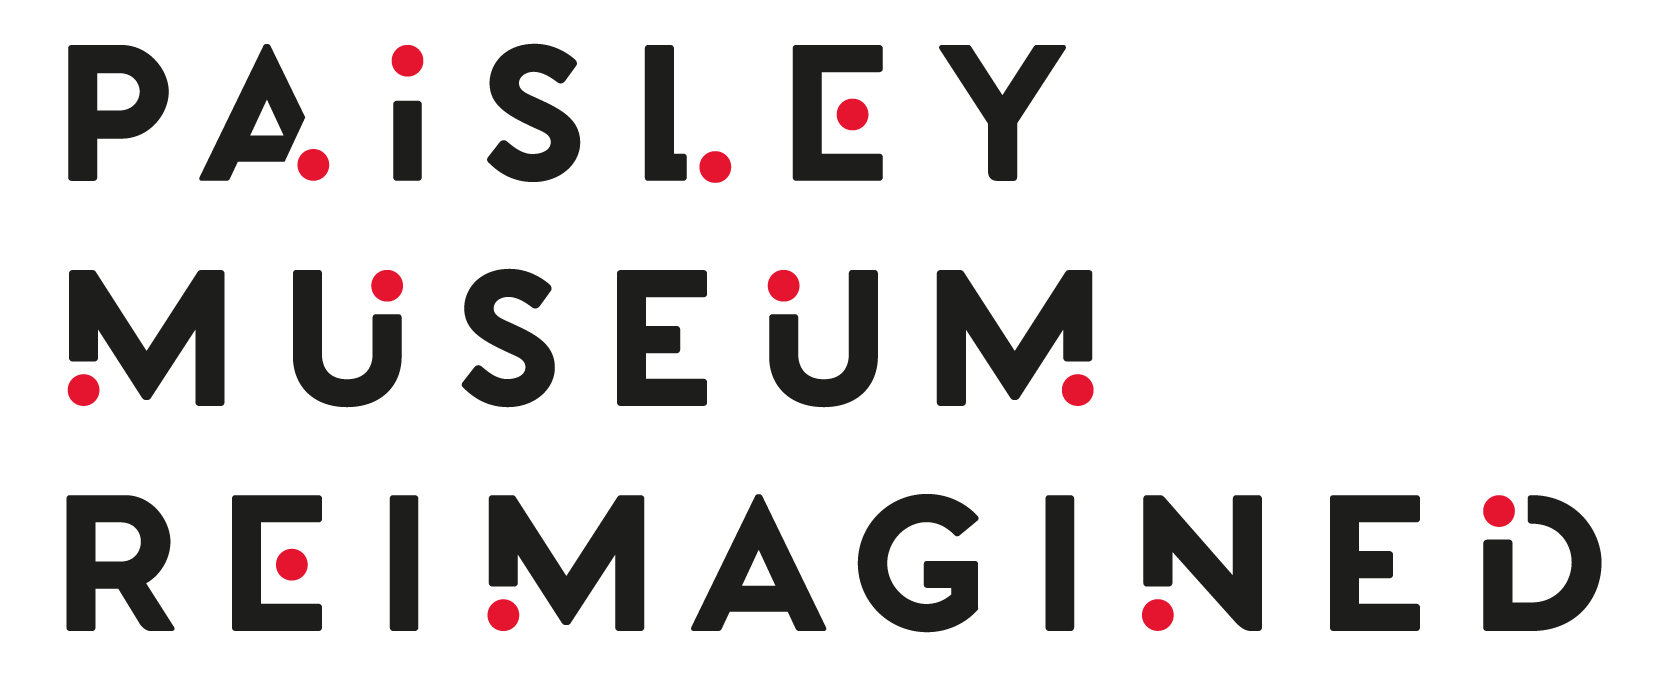 Paisley Museum ReImagined Logo